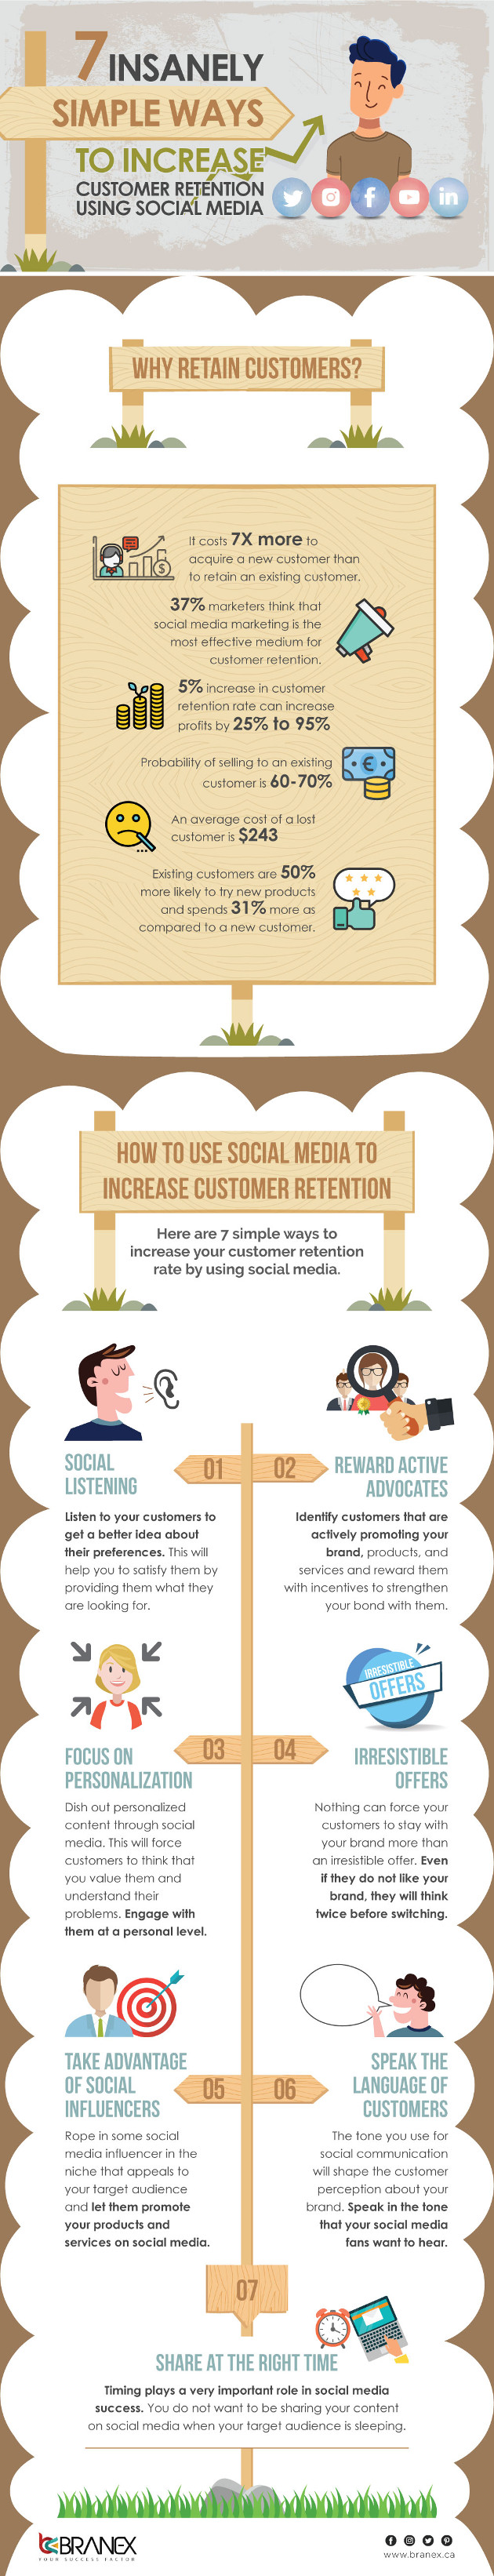 Seven Simple Ways to Increase Customer Retention Using Social Media